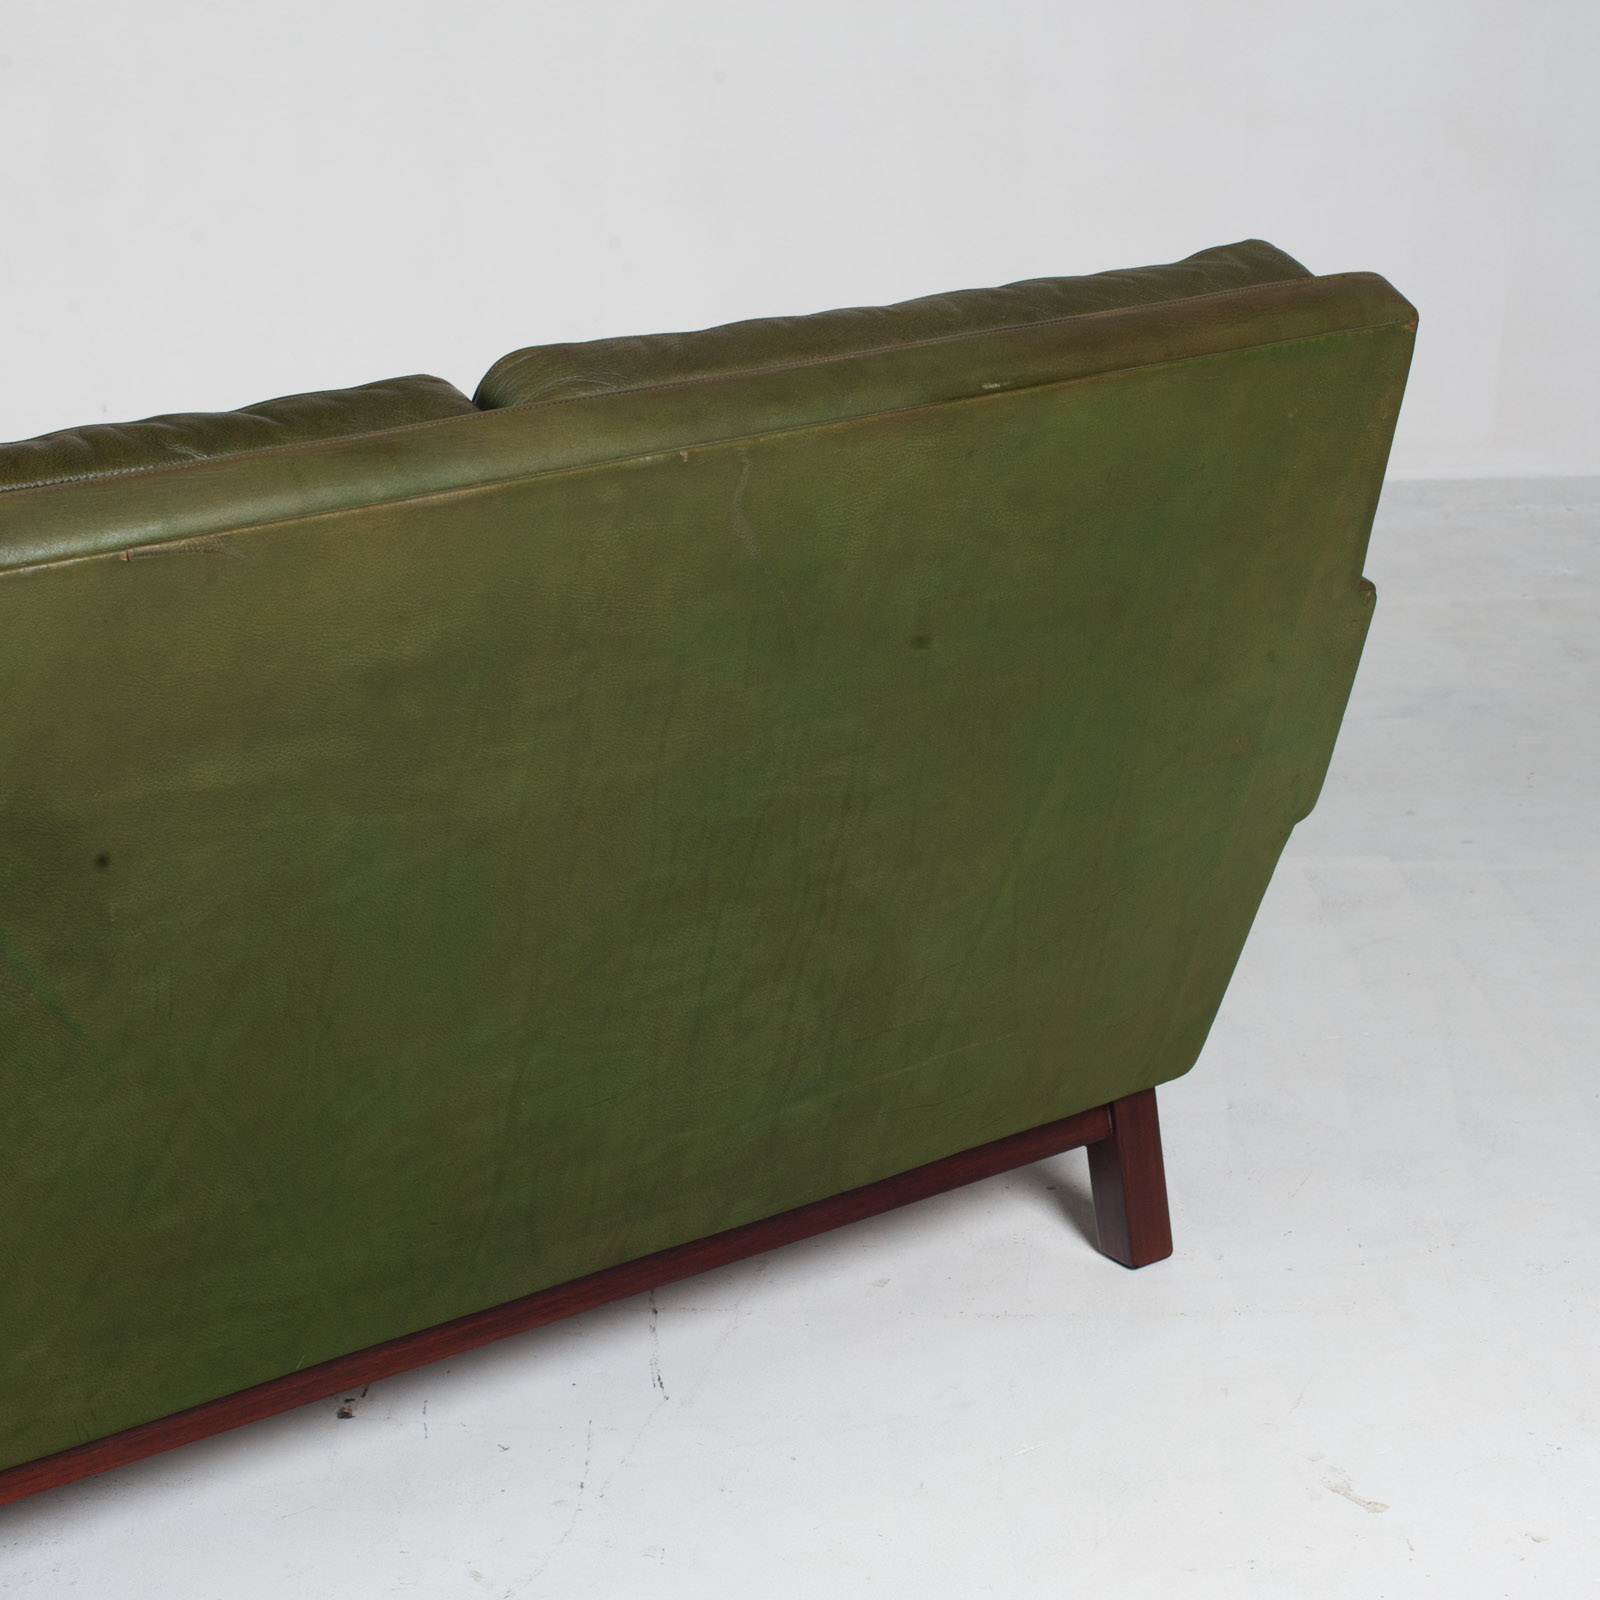 4 Seat Sofa In Olive Leather 1960s Denmark 015